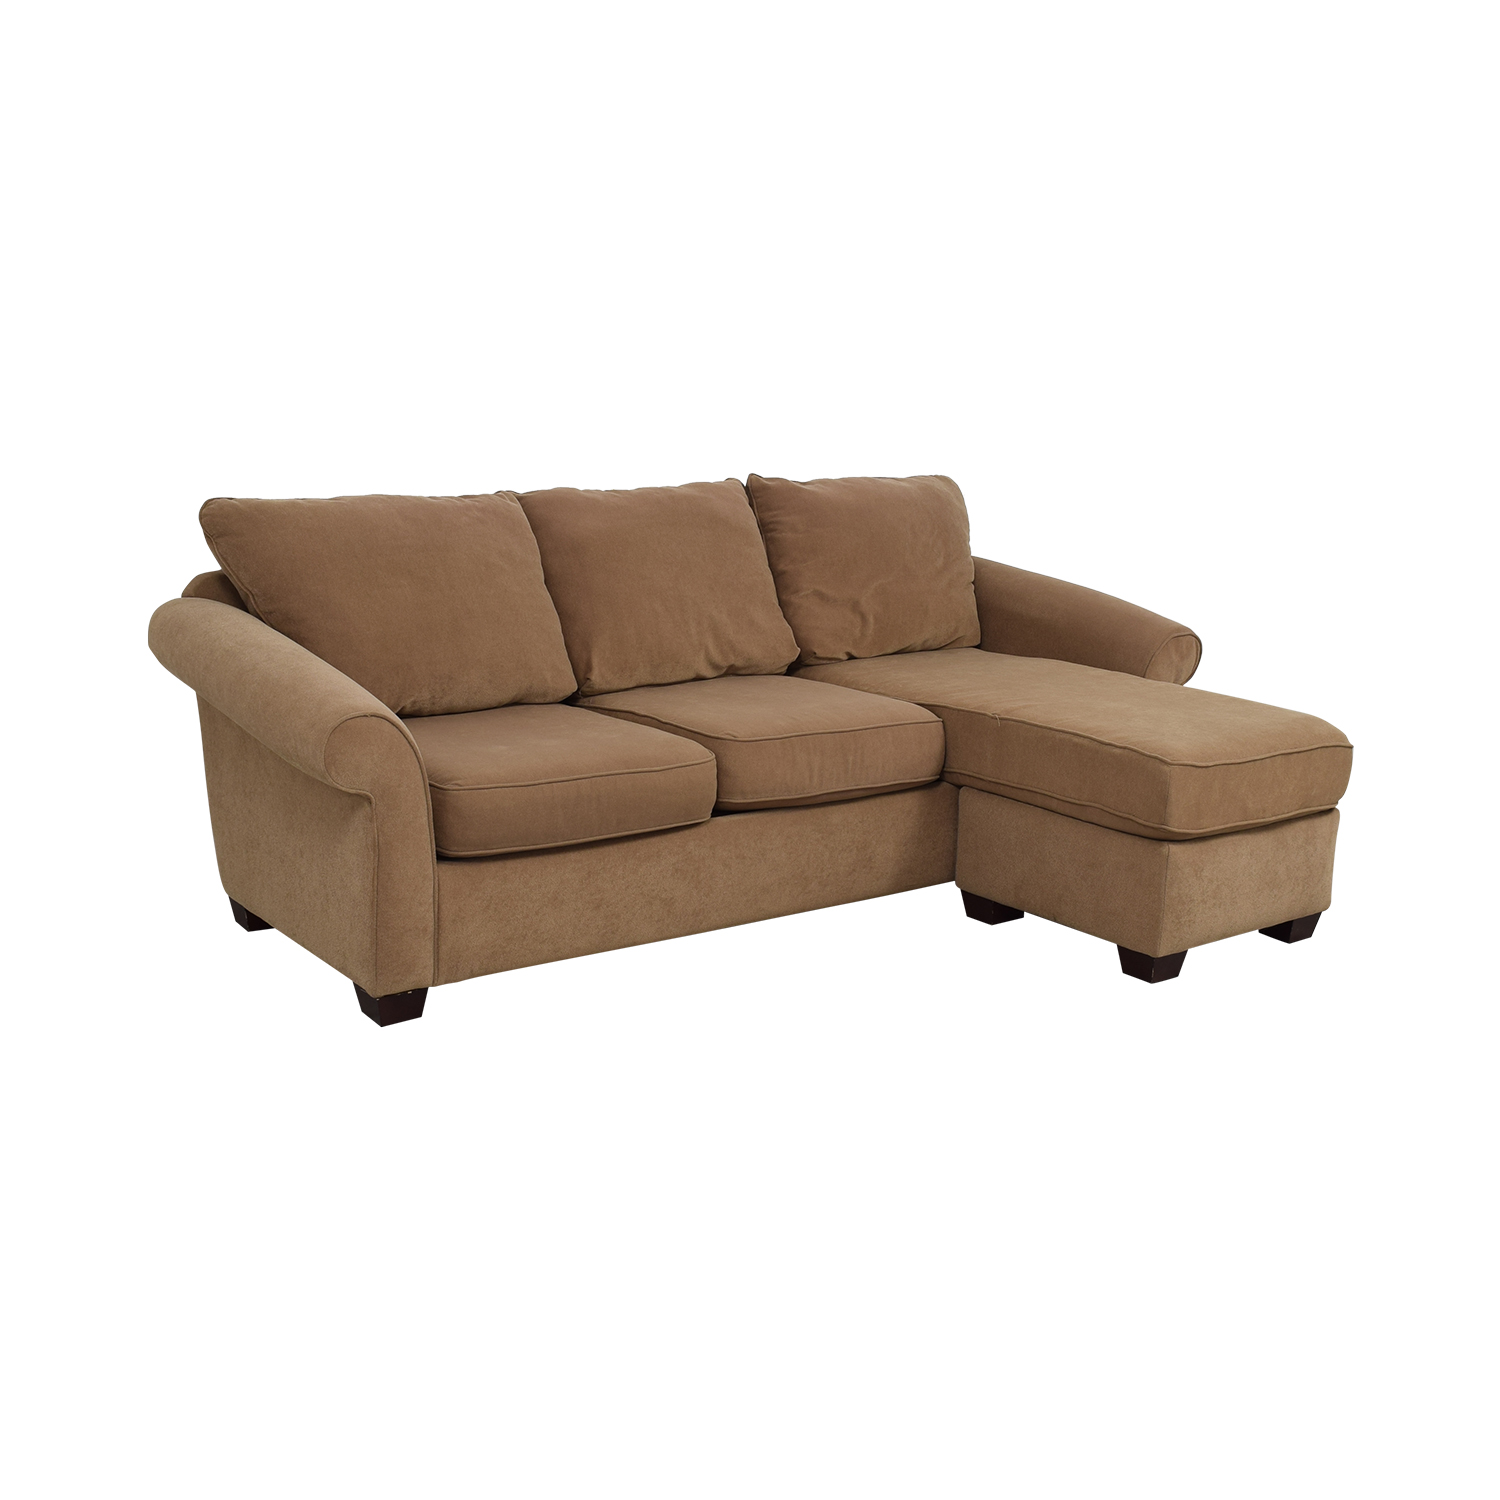 87% OFF - Costco Costco Brown Chaise Sectional / Sofas